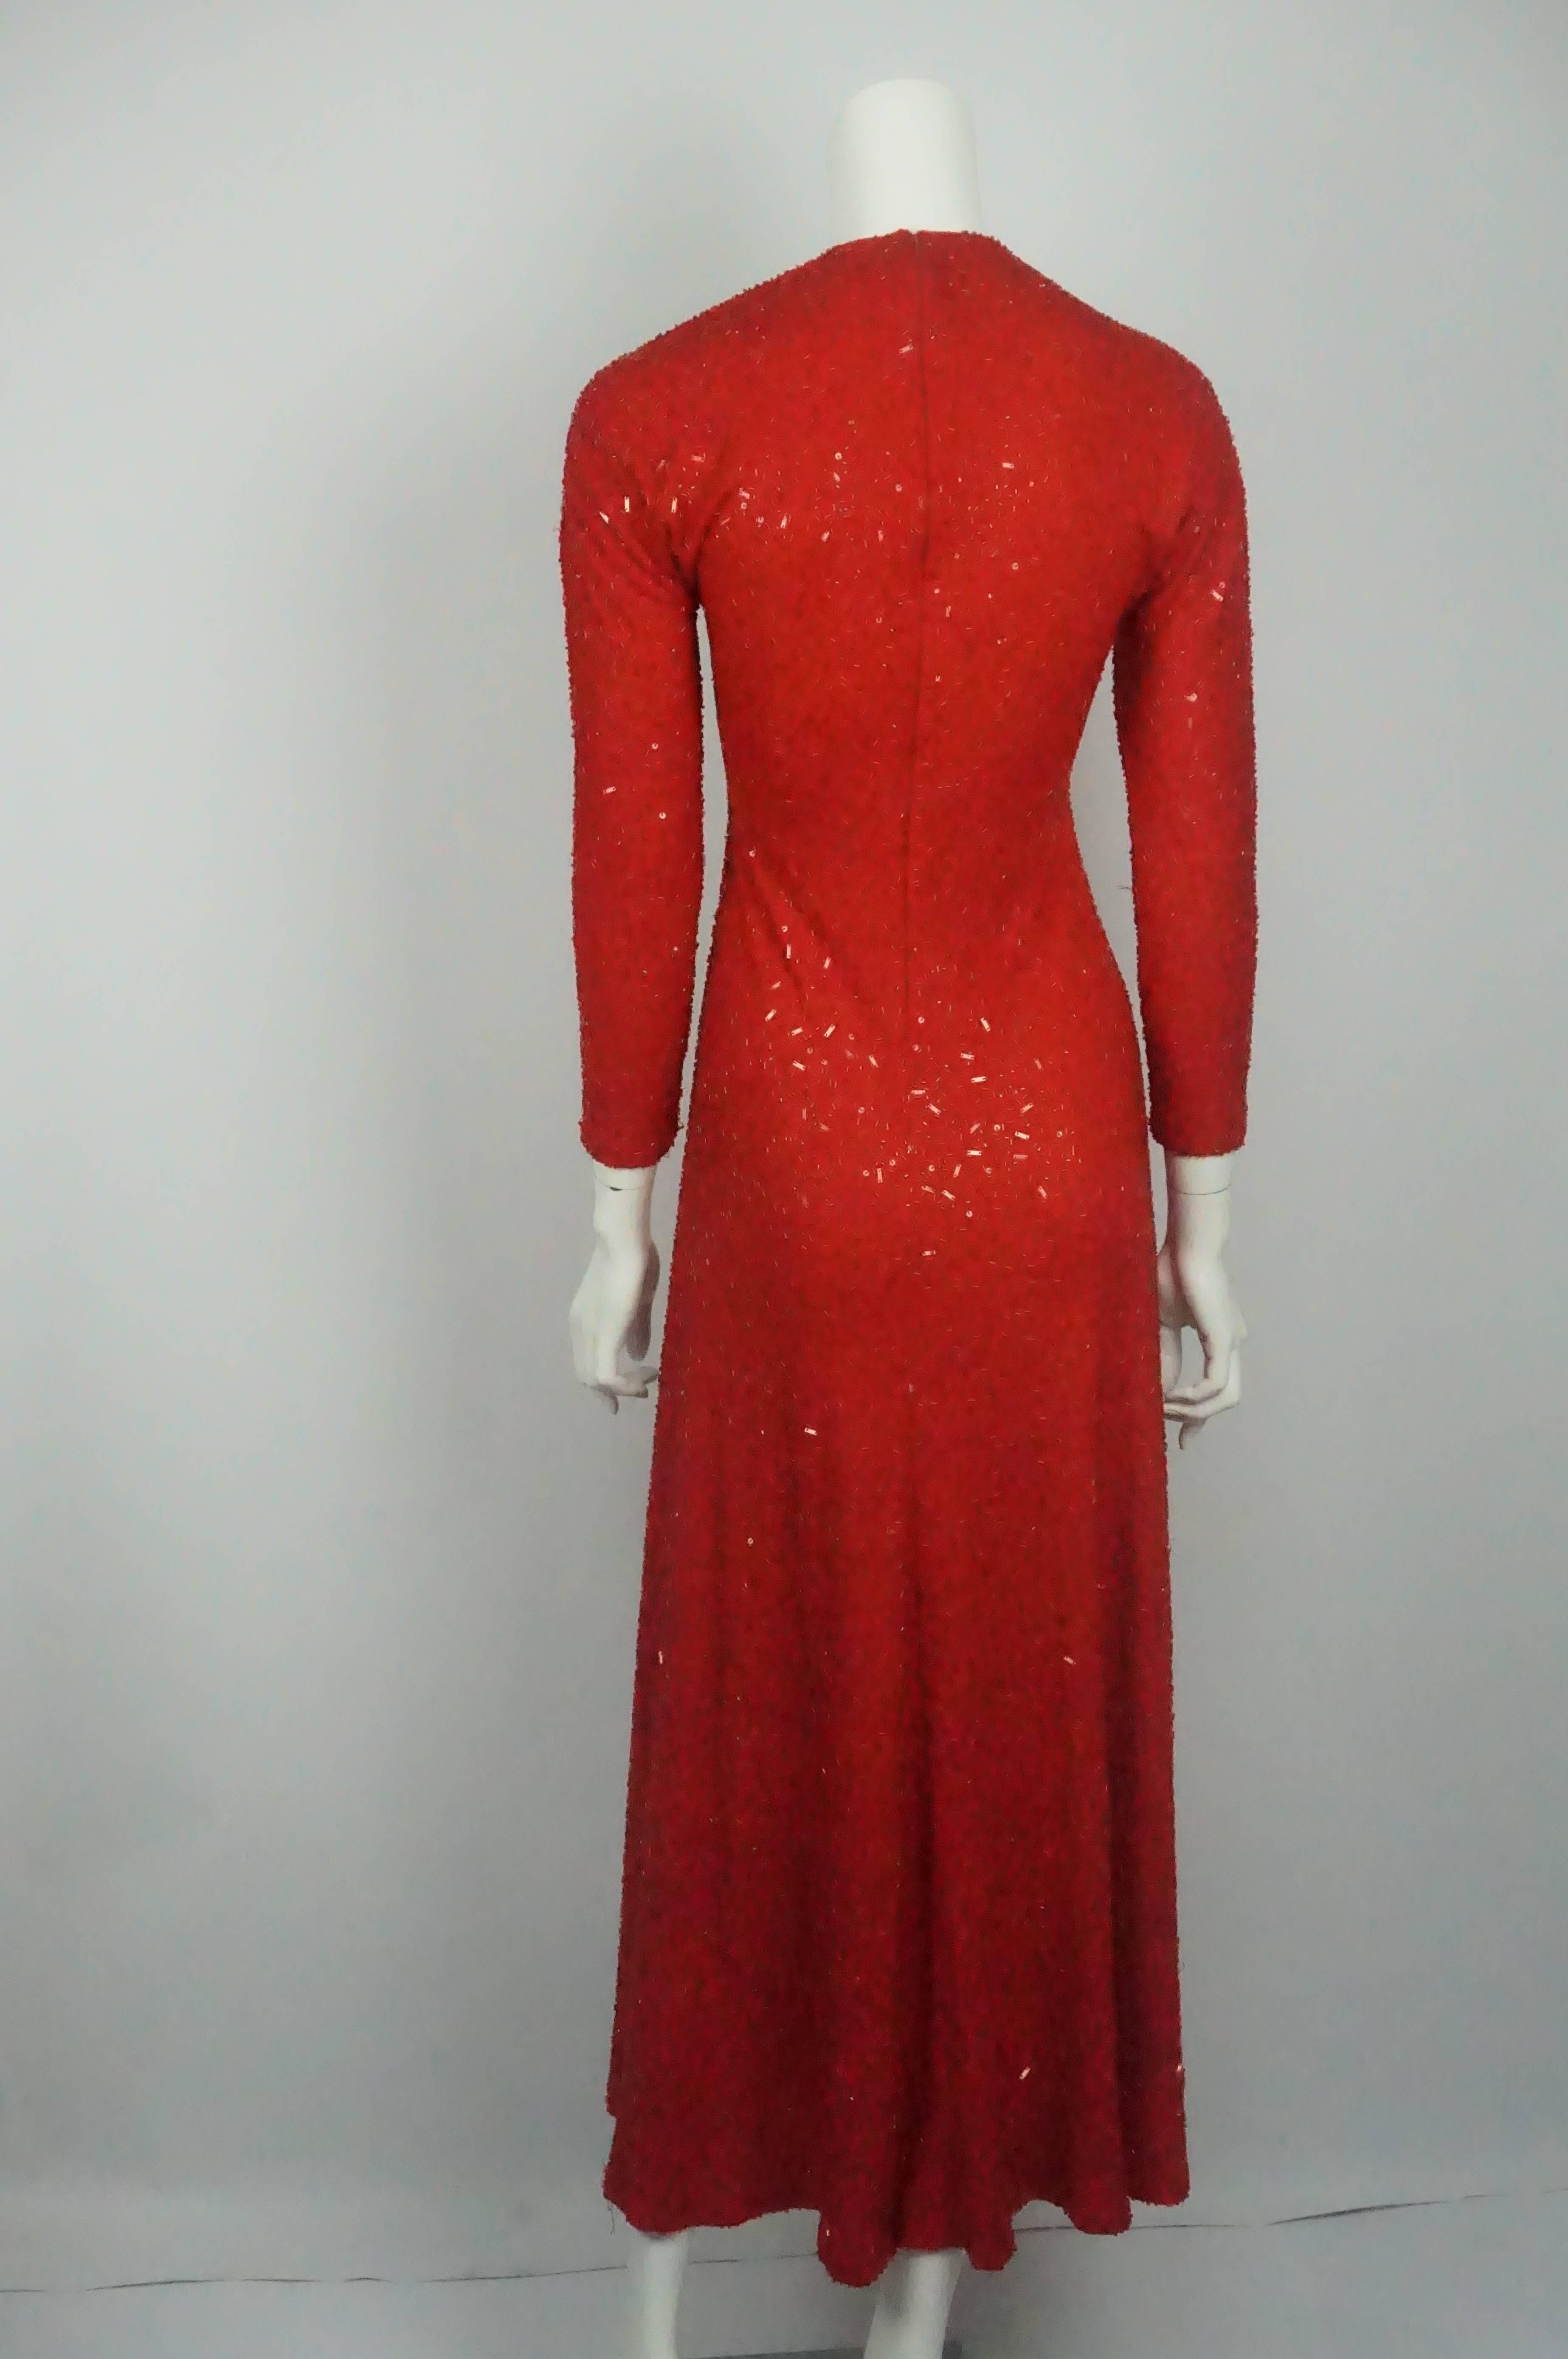 ea76c403f5a Naeem Khan Red Fully Beaded Long Sleeve Gown For Sale at 1stdibs